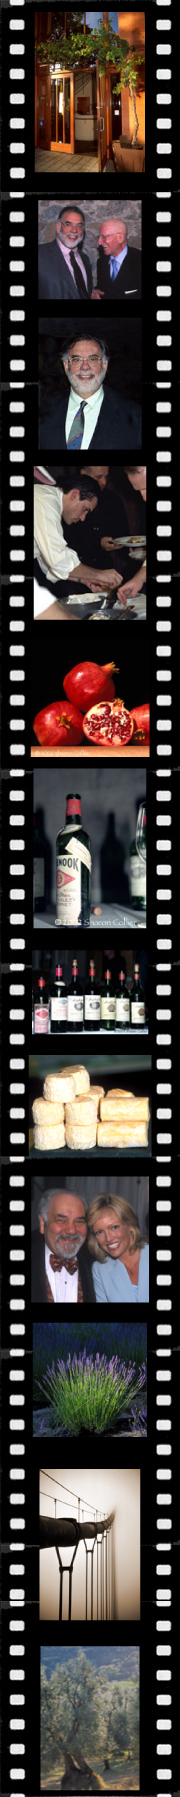 Filmstrip with commercial images by Sharon Collier